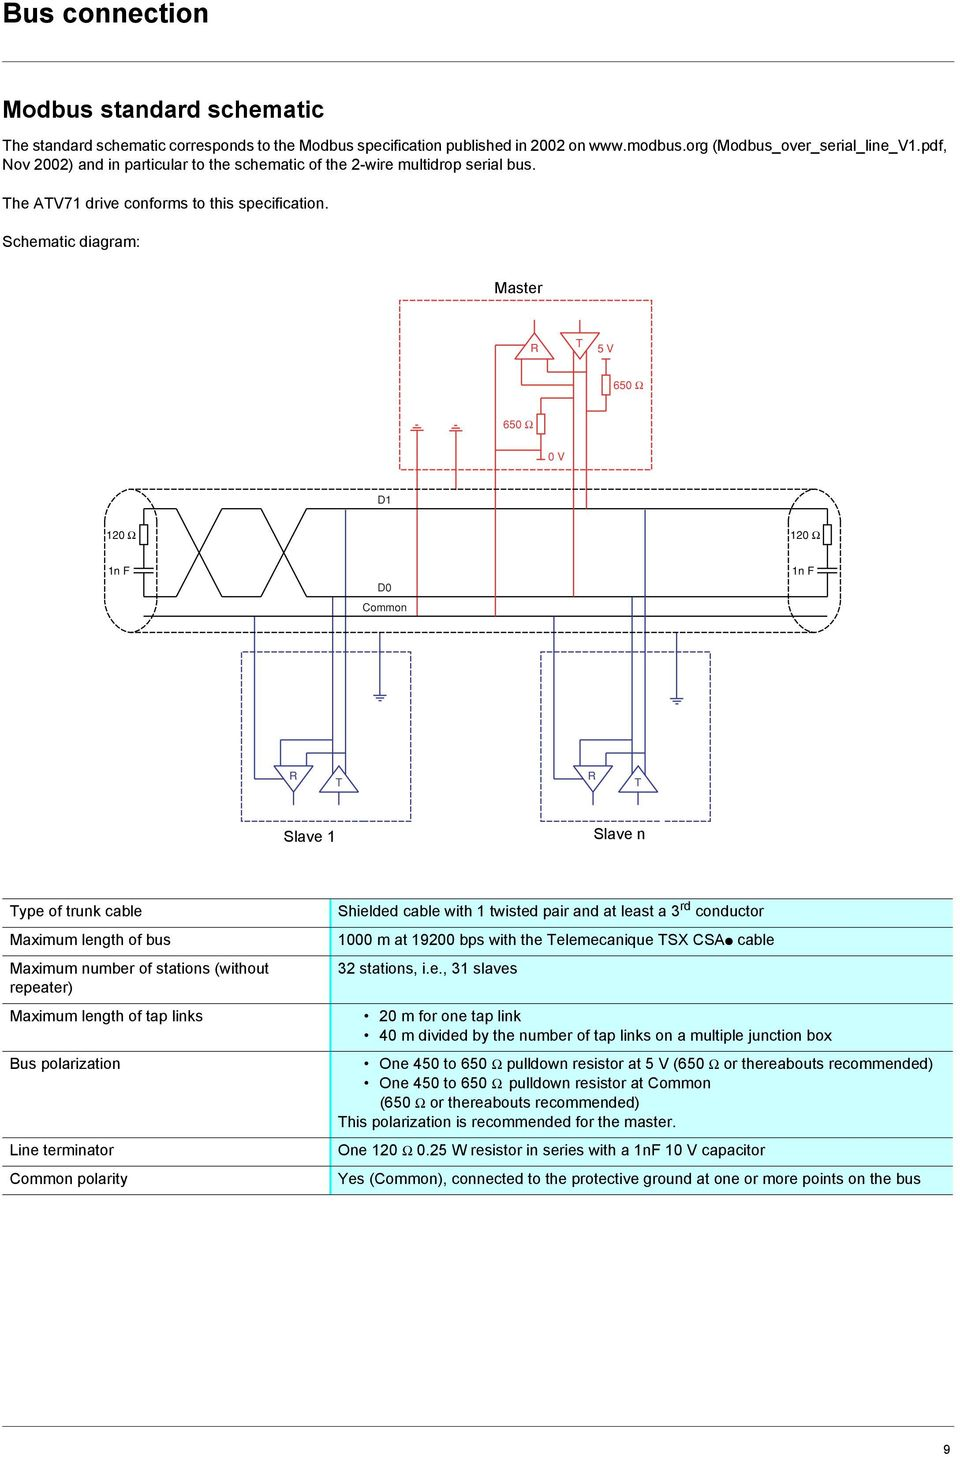 altivar 71 wiring diagram master html with 15666870 Altivar 71 Integrated Modbus User S Manual Retain For Future Use on Altivar 71 Wiring Diagram additionally 15666870 Altivar 71 Integrated Modbus User S Manual Retain For Future Use further